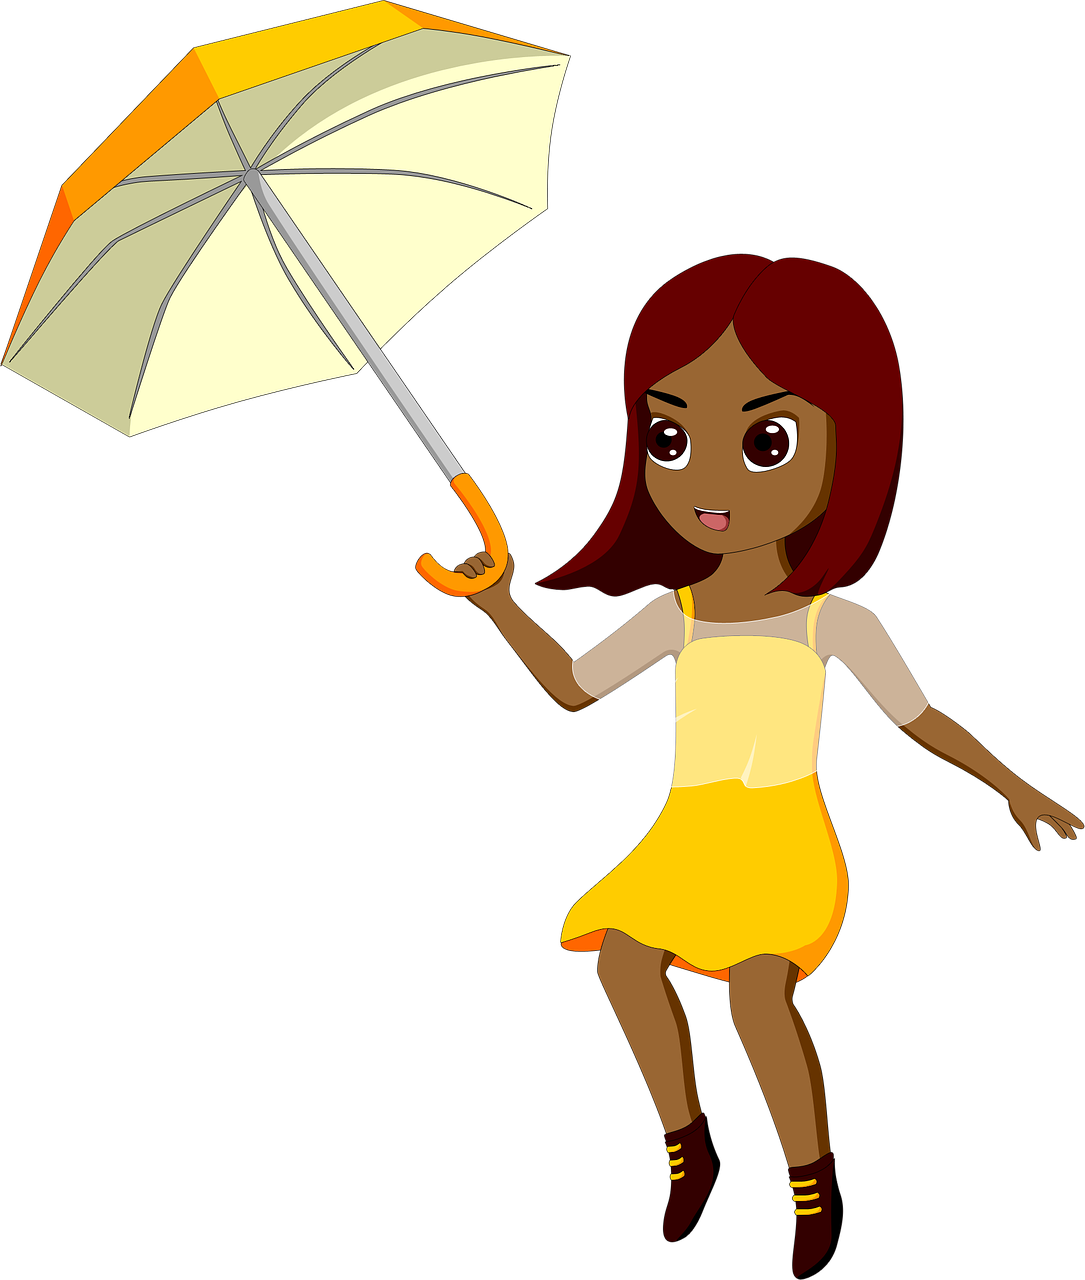 Windy clipart drawing. Wind clip art transprent